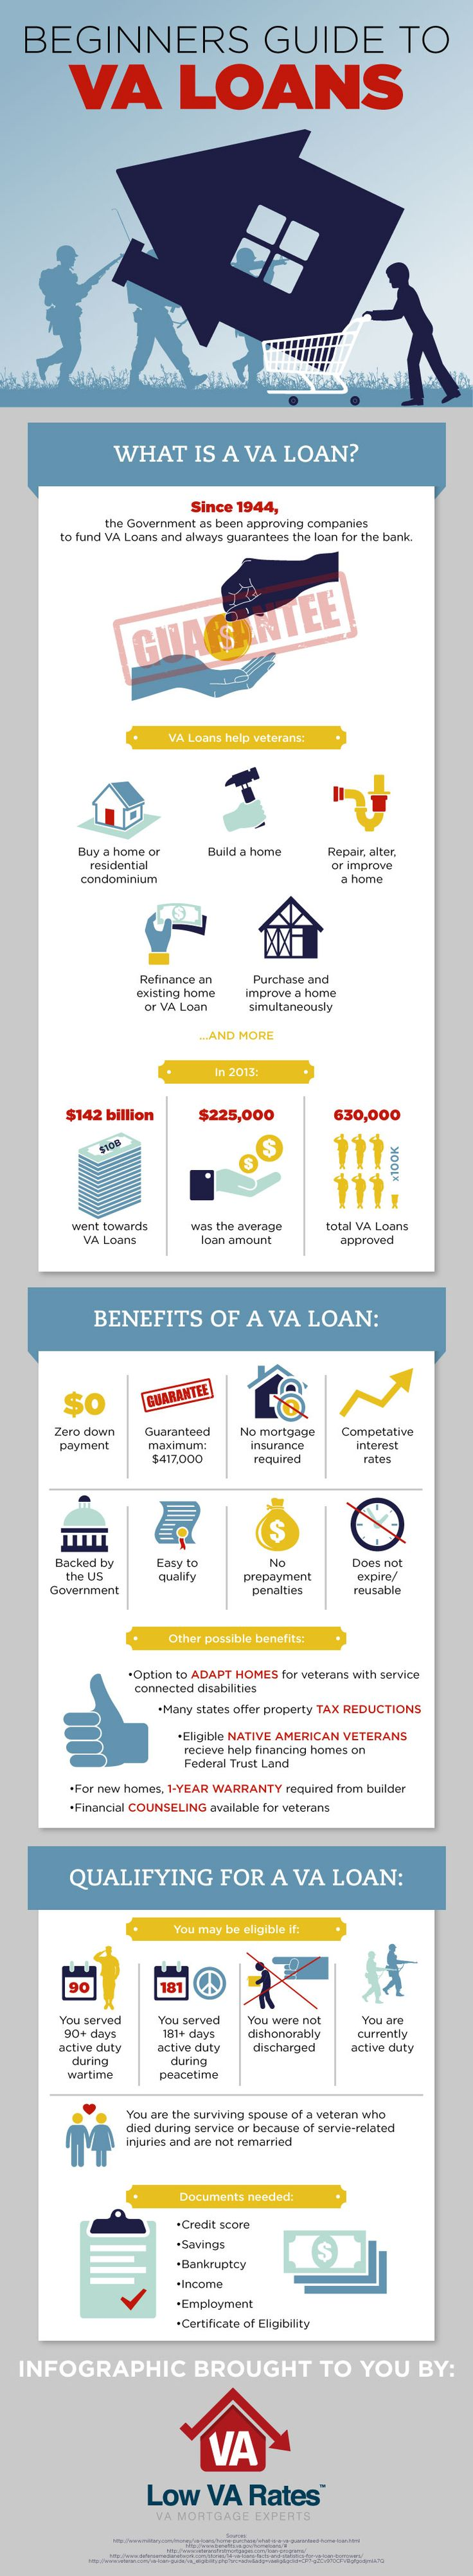 88 best all about va loans images on pinterest counseling real love working with our active military and veteran families in our community to help them buy and refinance their homes with the va zero down home loan xflitez Choice Image